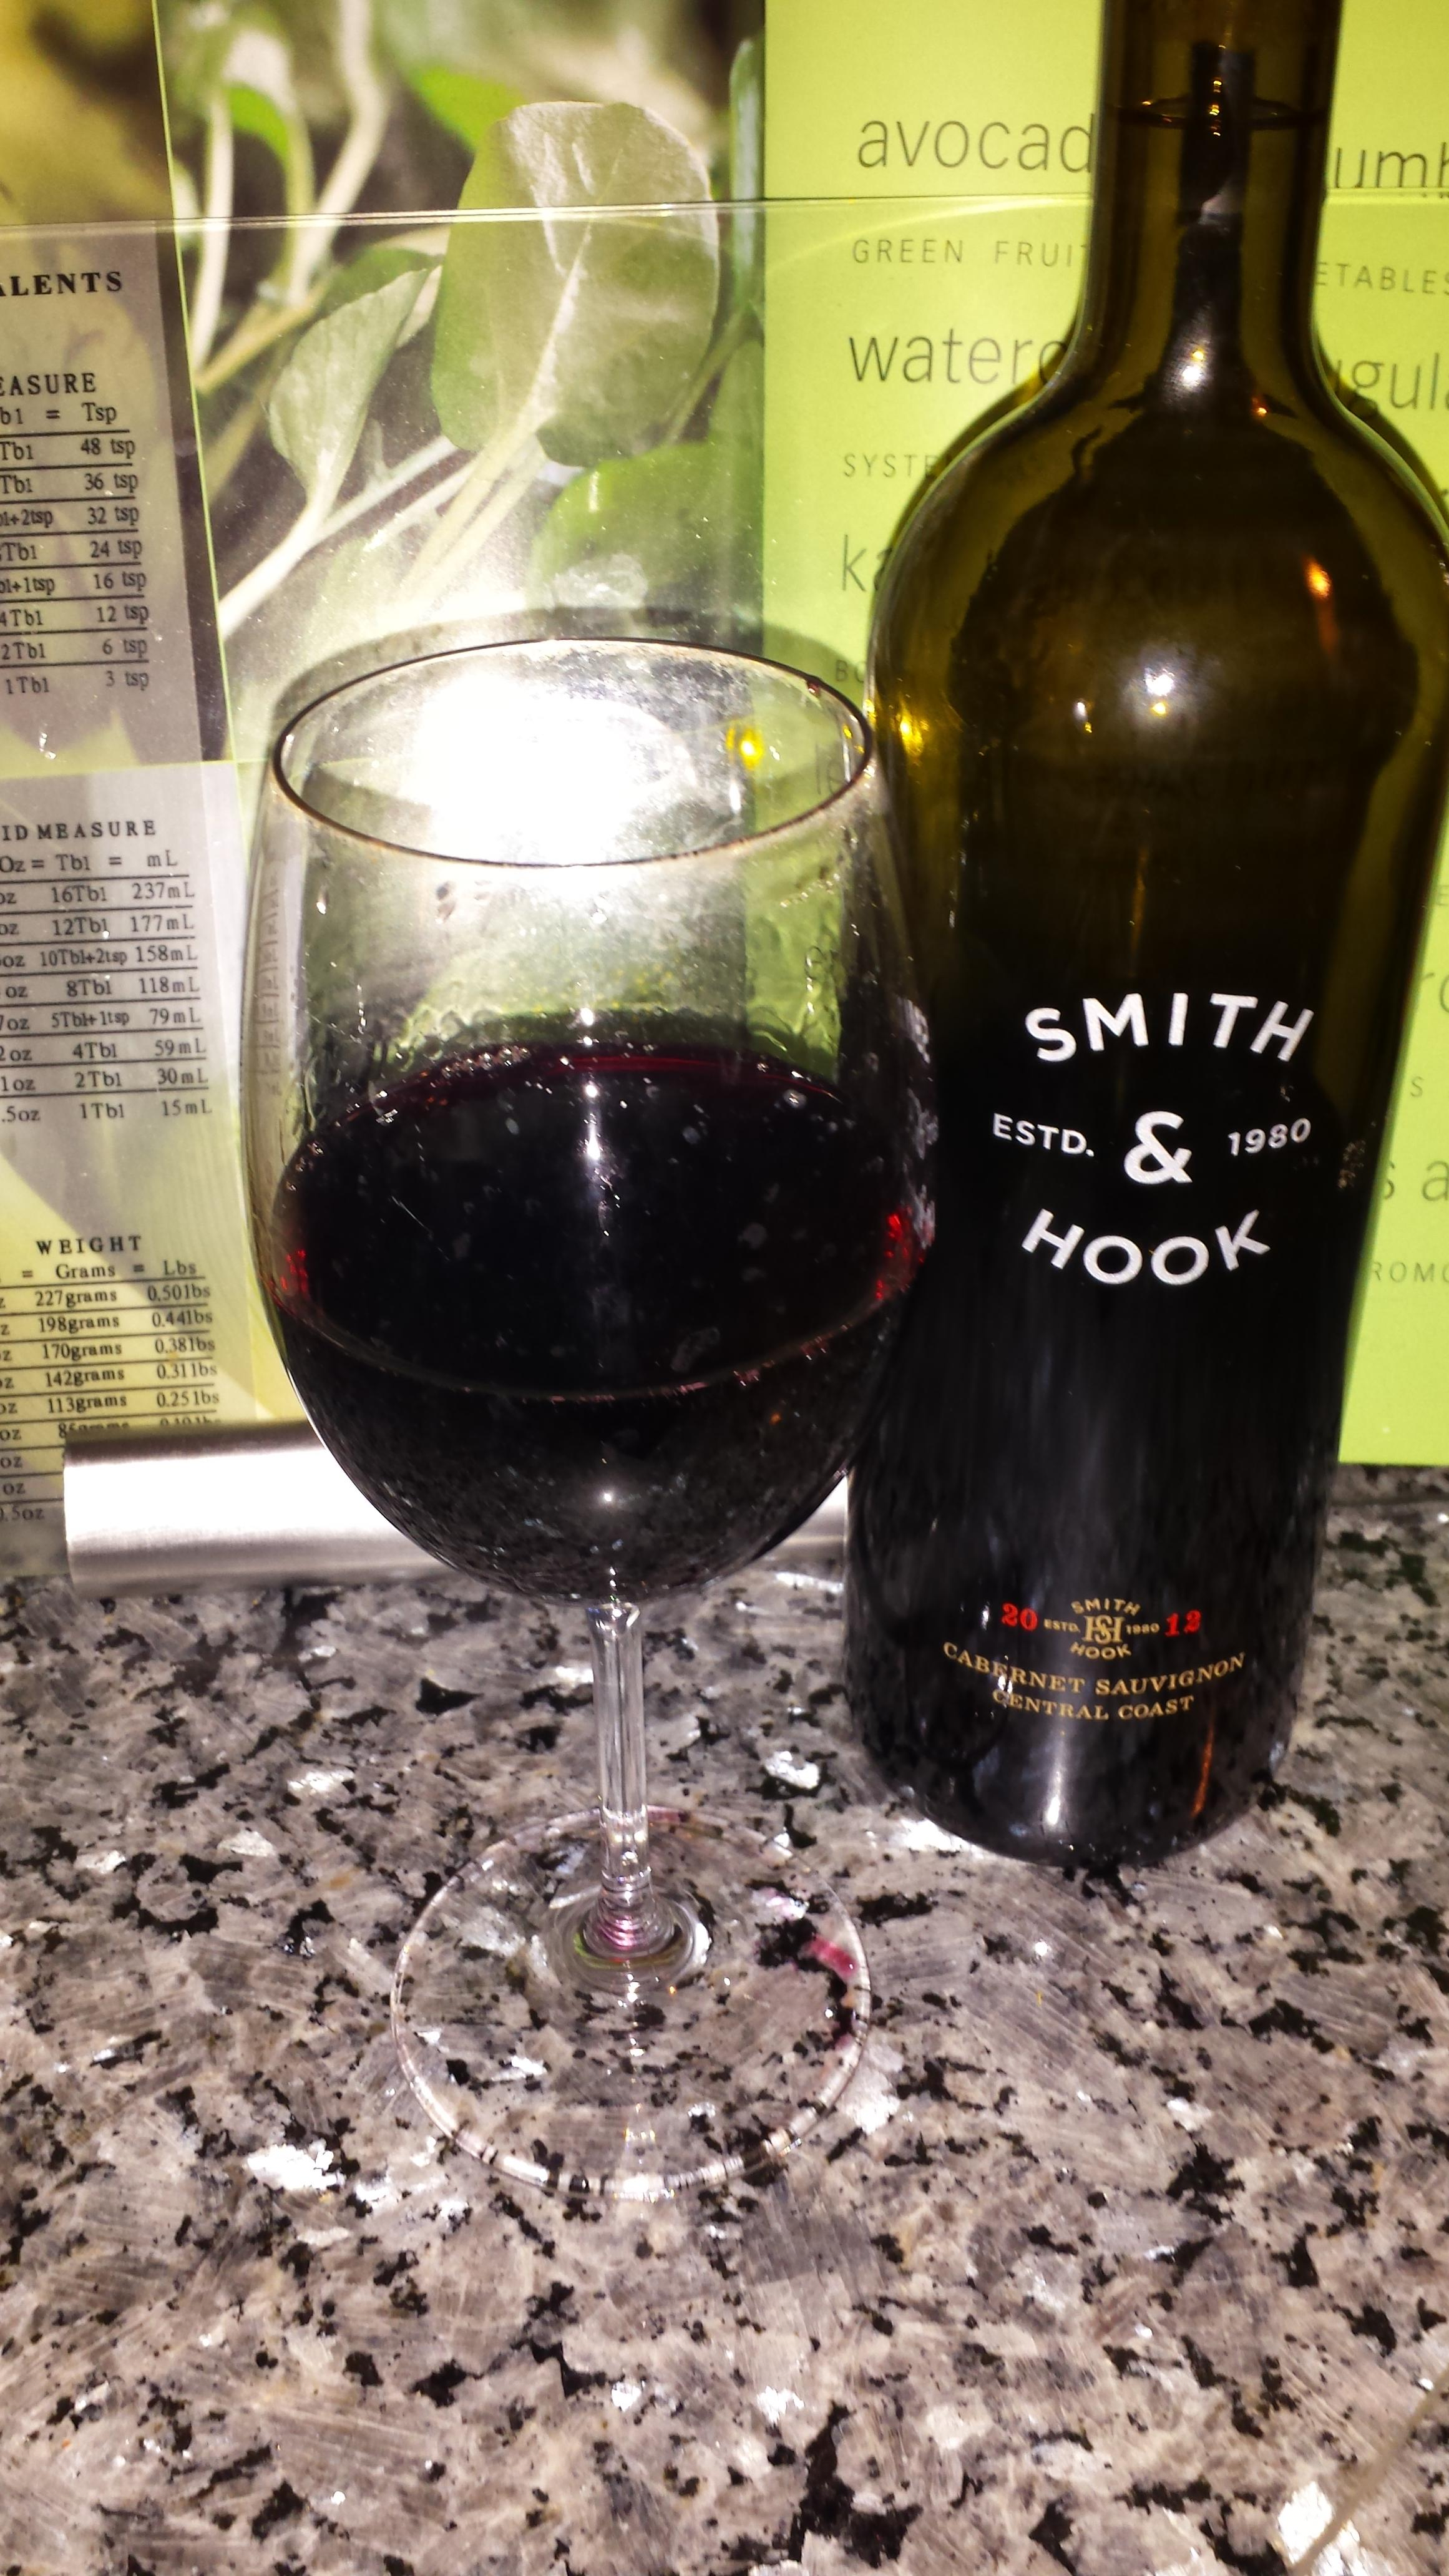 smith and hook wine